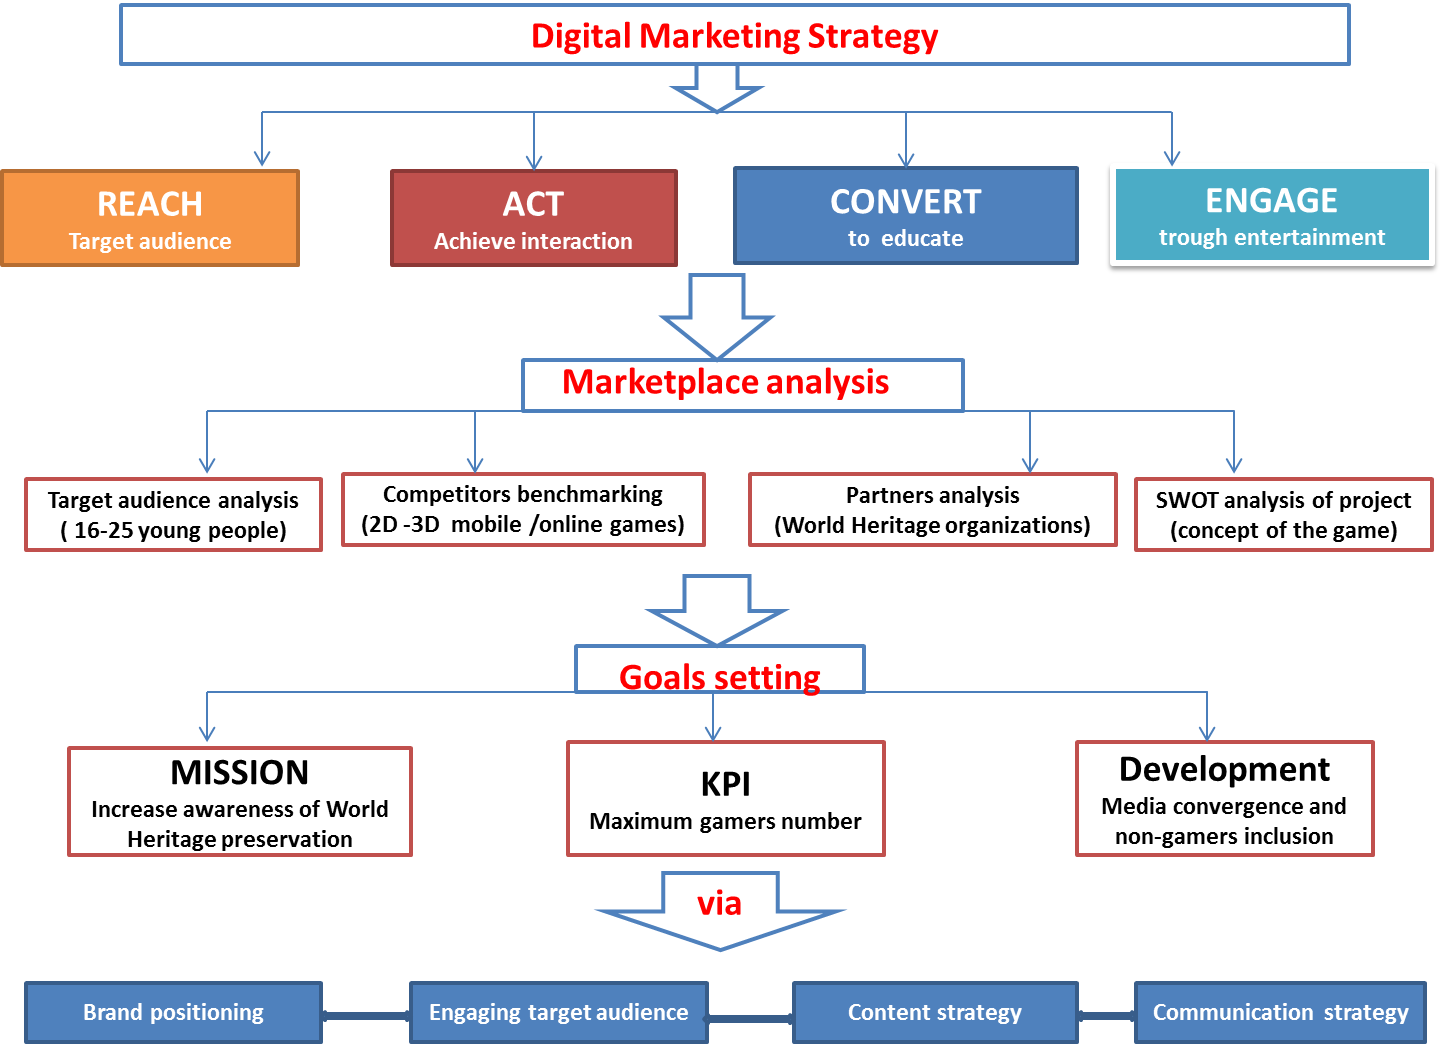 sostac marketing communication and branding Suggested marketing communications plan format (sostac model) executive summary – presents a brief overview of the proposed plan the marketing communications plan should open with a brief summary of the plan's main goals and recommendations.